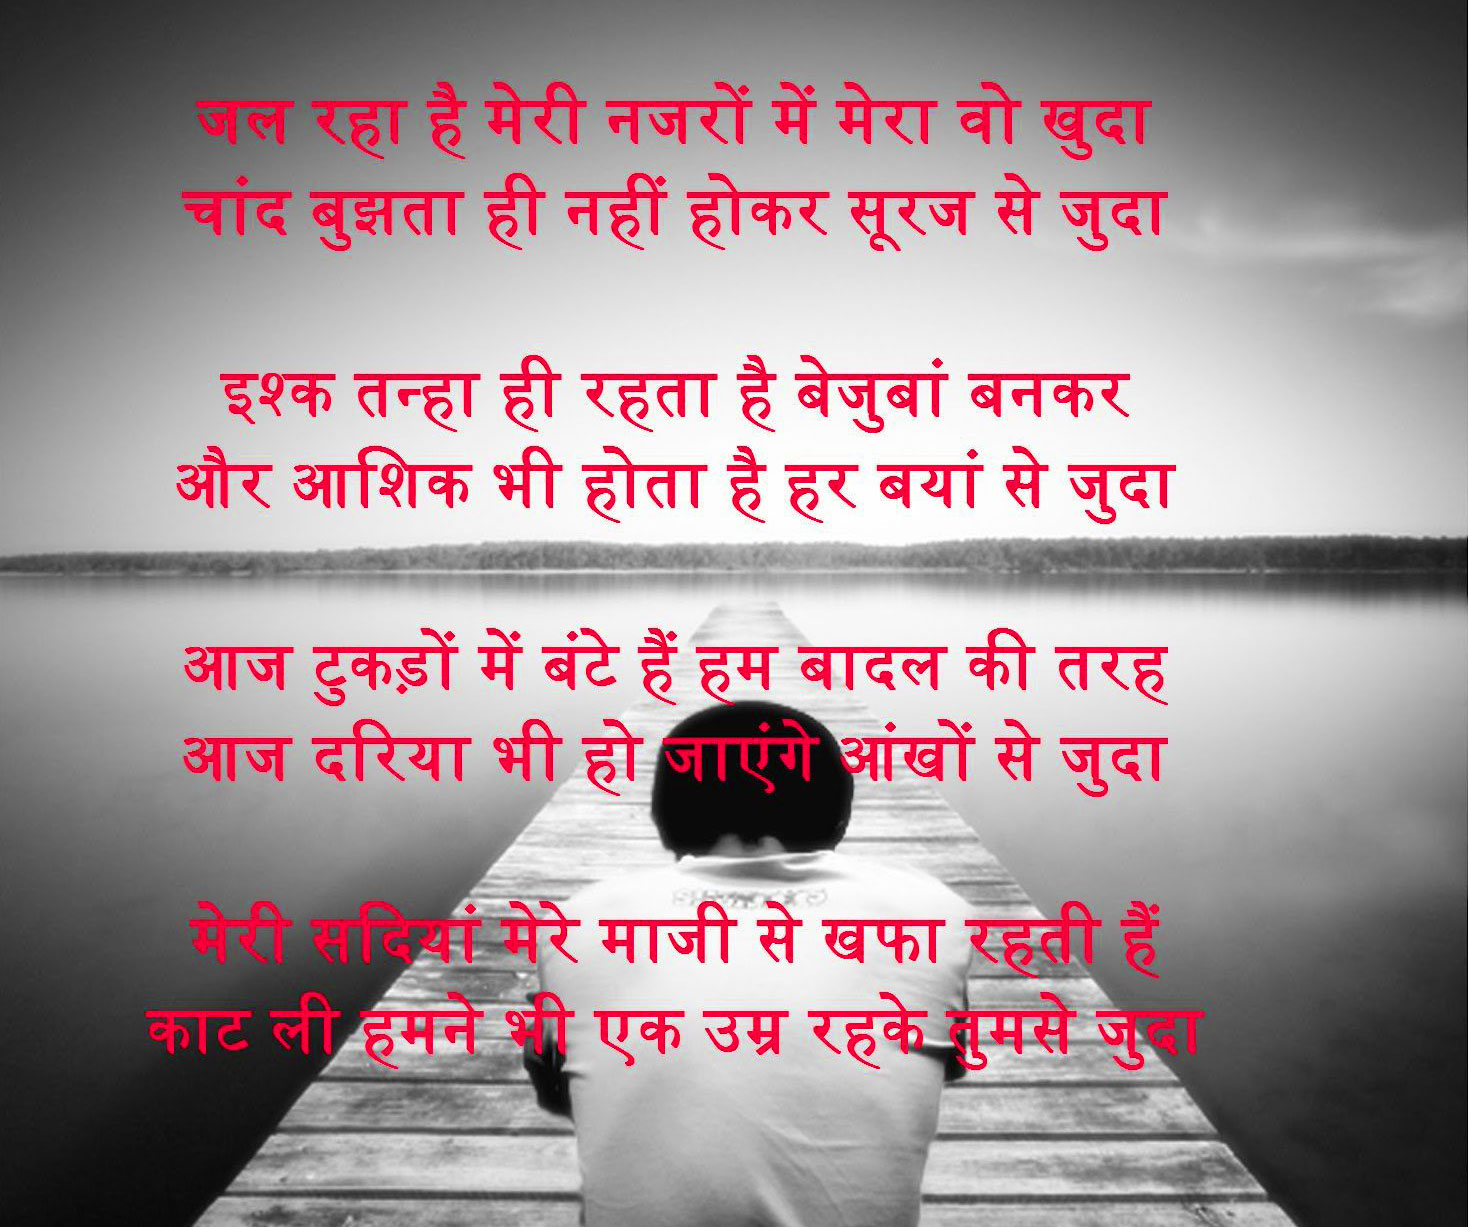 Hindi-Bewafa-Shayari-Images-106